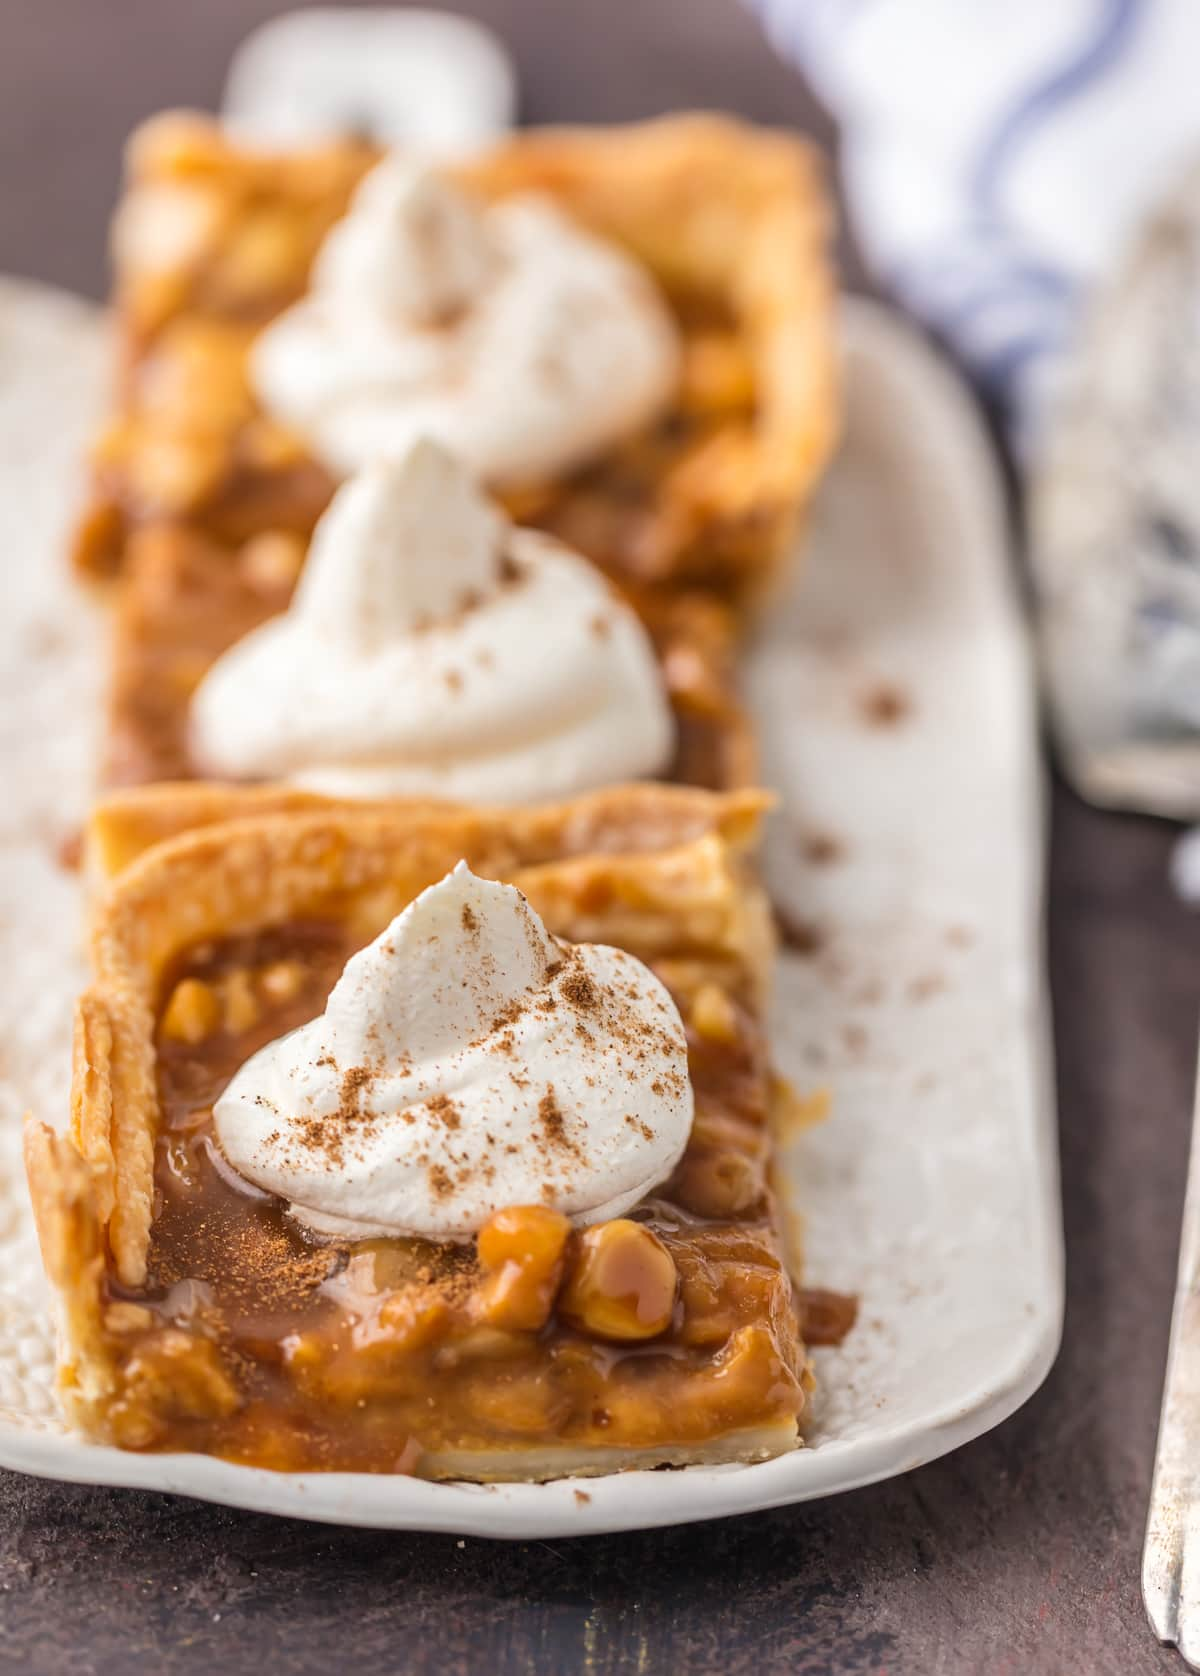 Pumpkin Pie bars lined up on a plate, topped with whipped cream